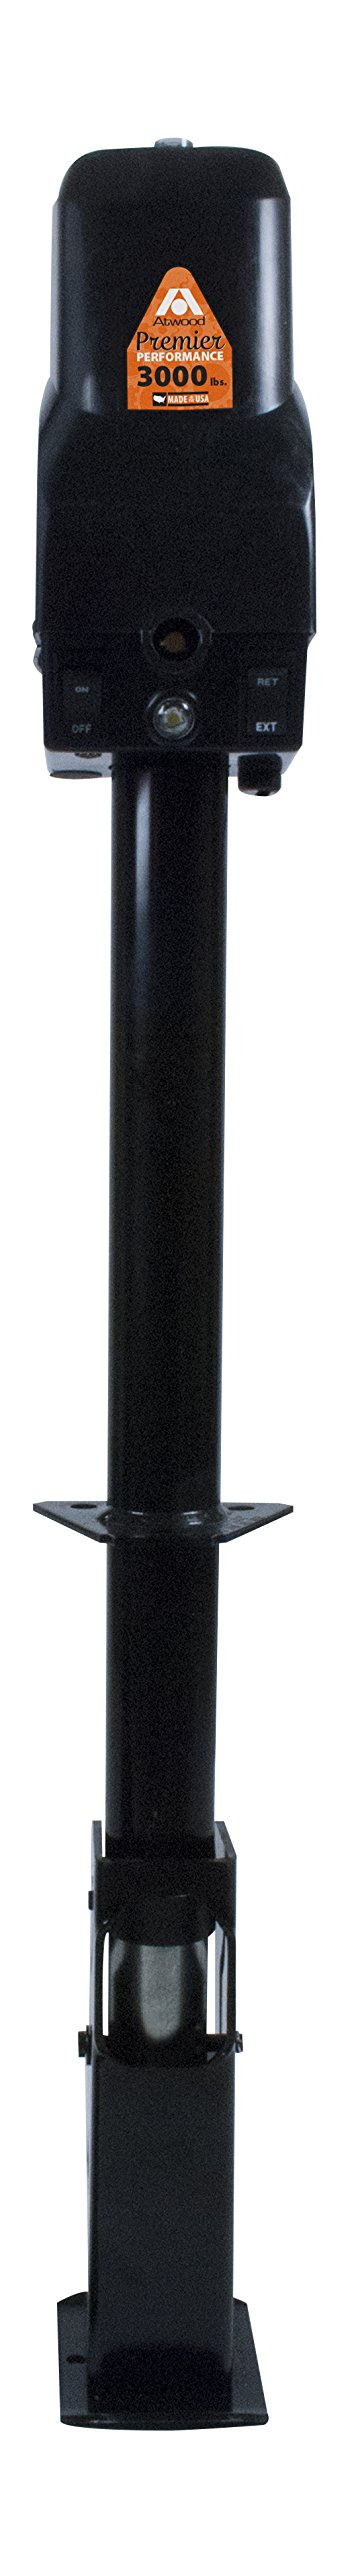 Atwood 81067 Black 3K Power Jack with Robofoot